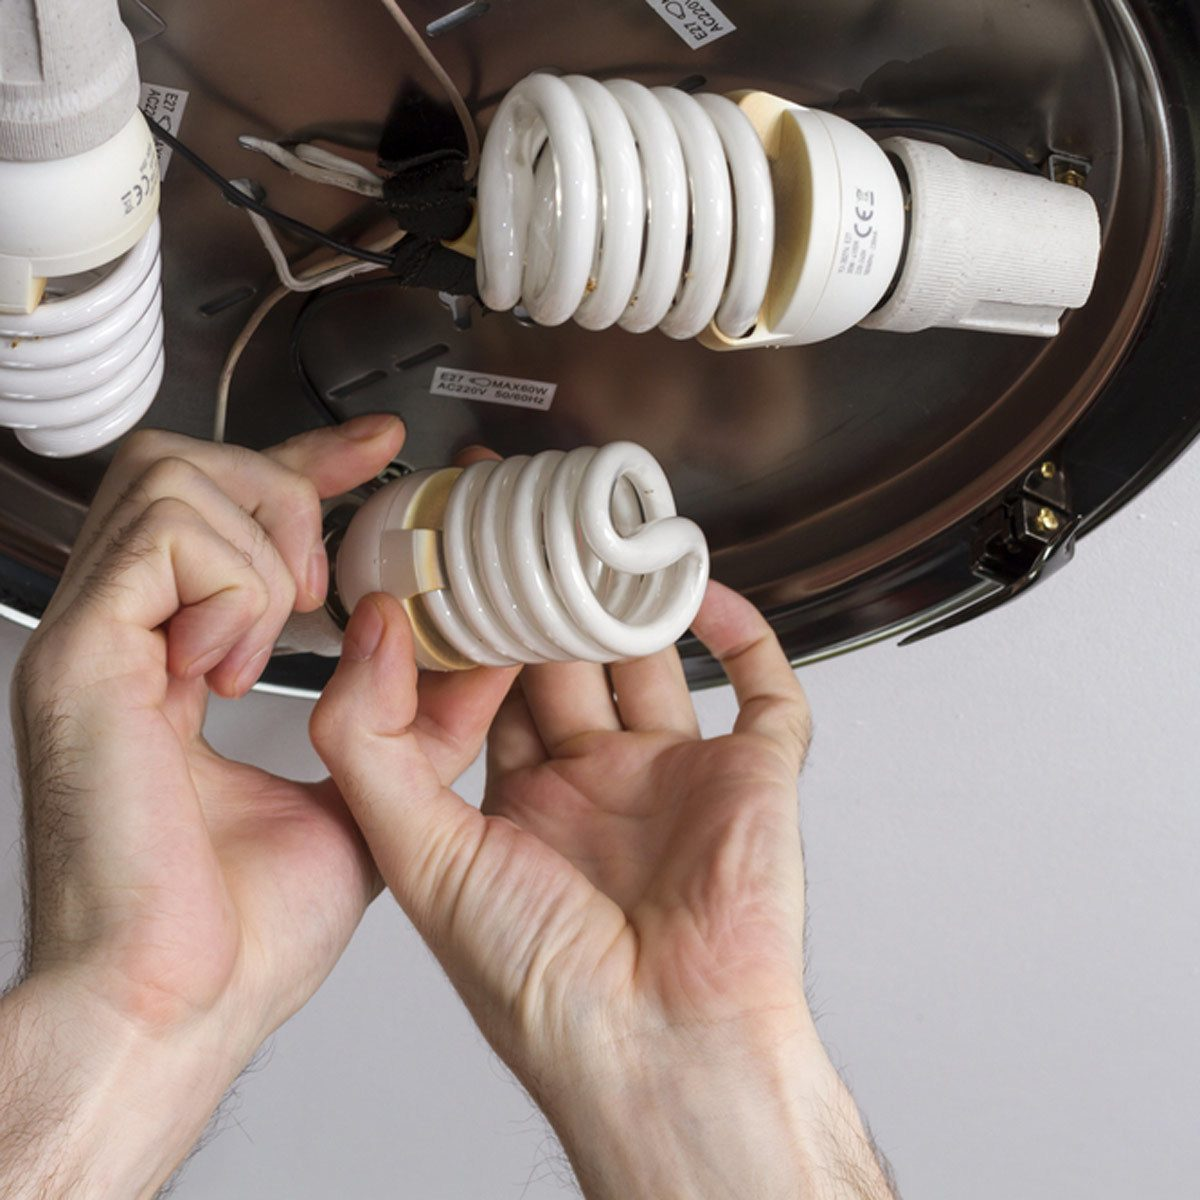 change a LED light bulb